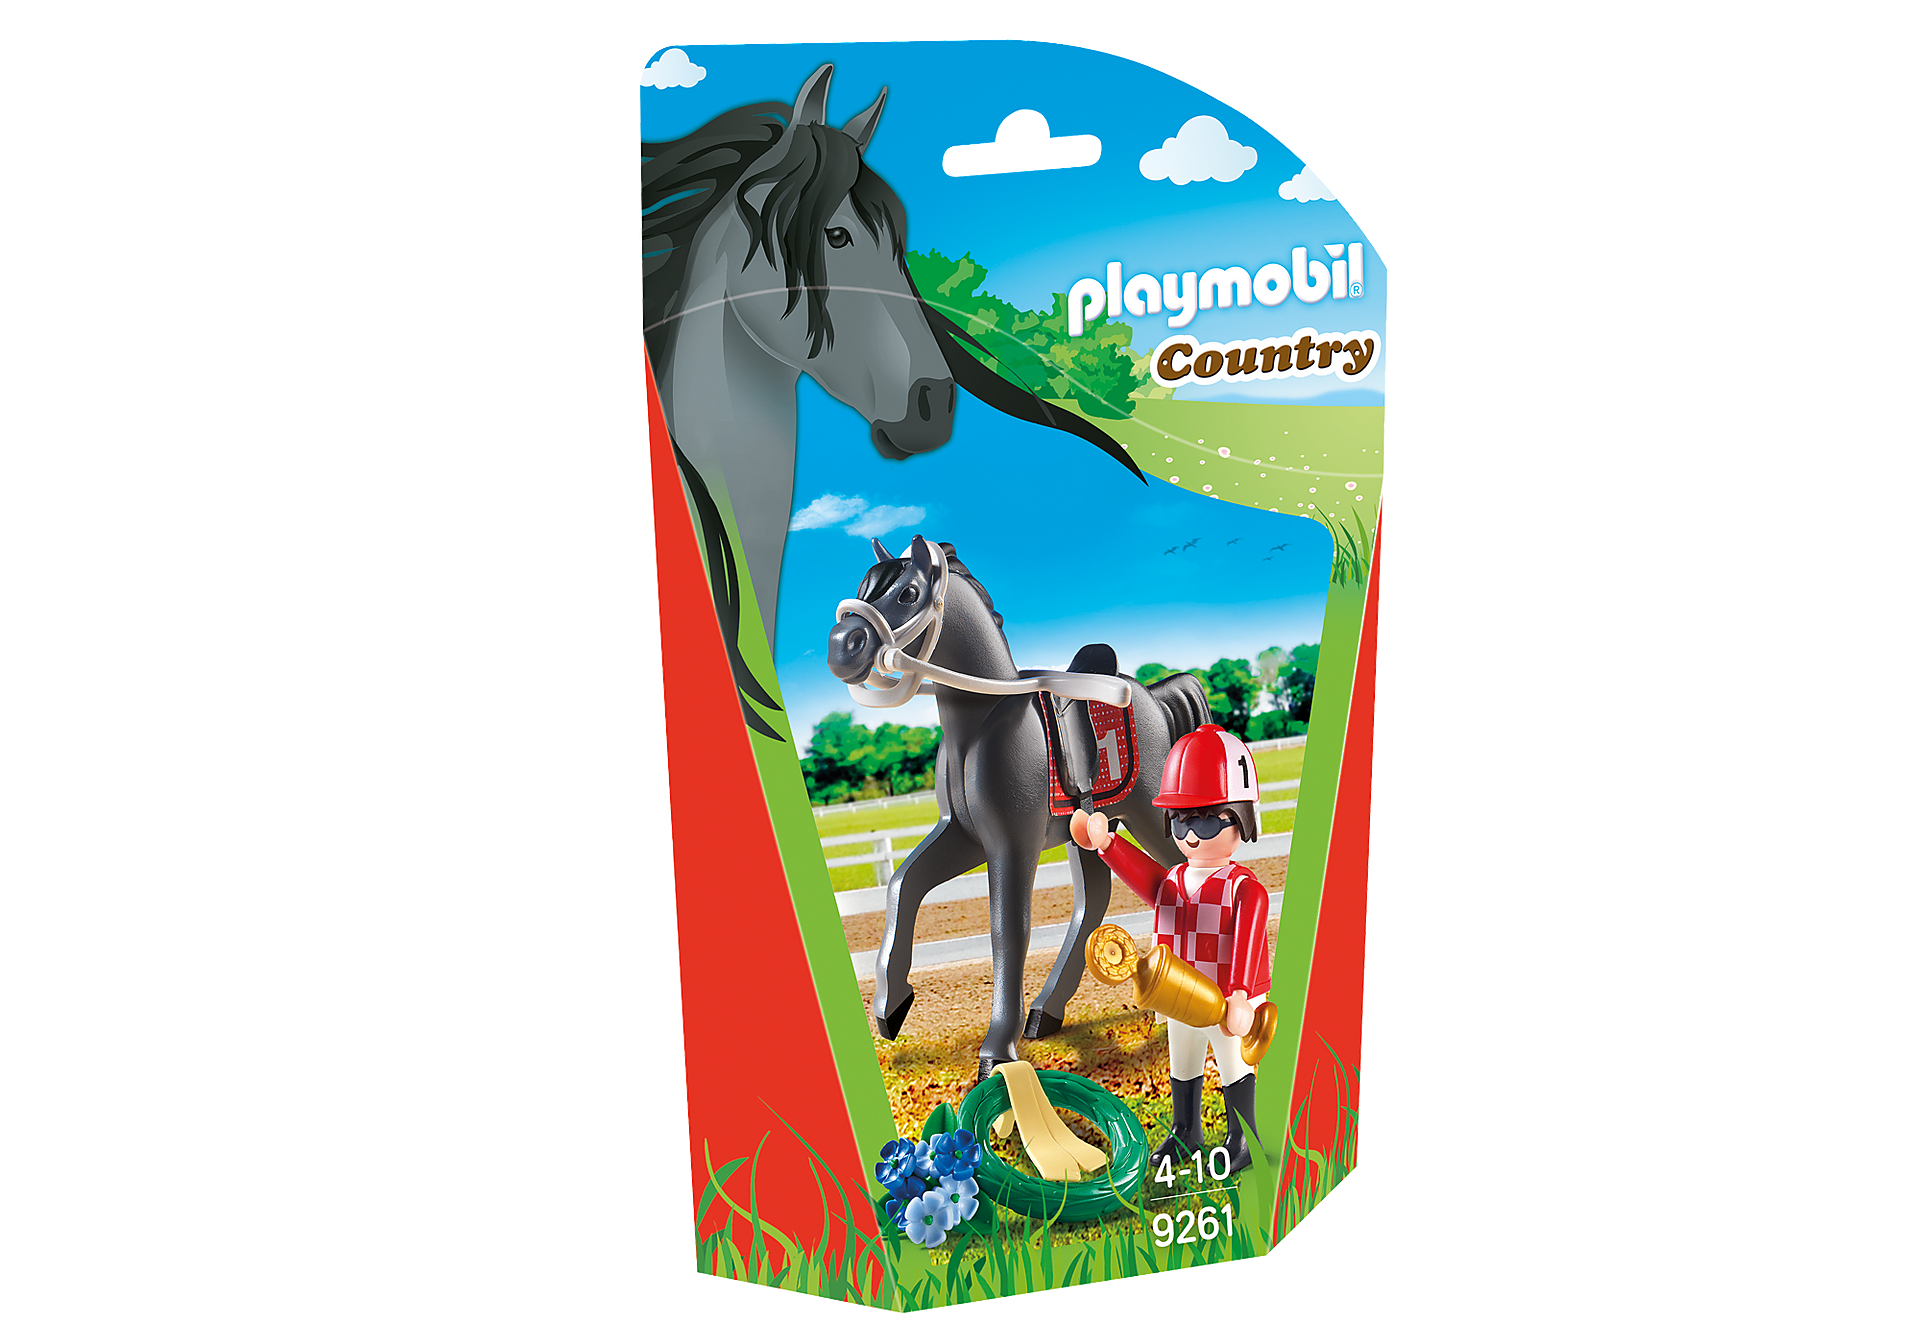 http://media.playmobil.com/i/playmobil/9261_product_box_front/Jockey